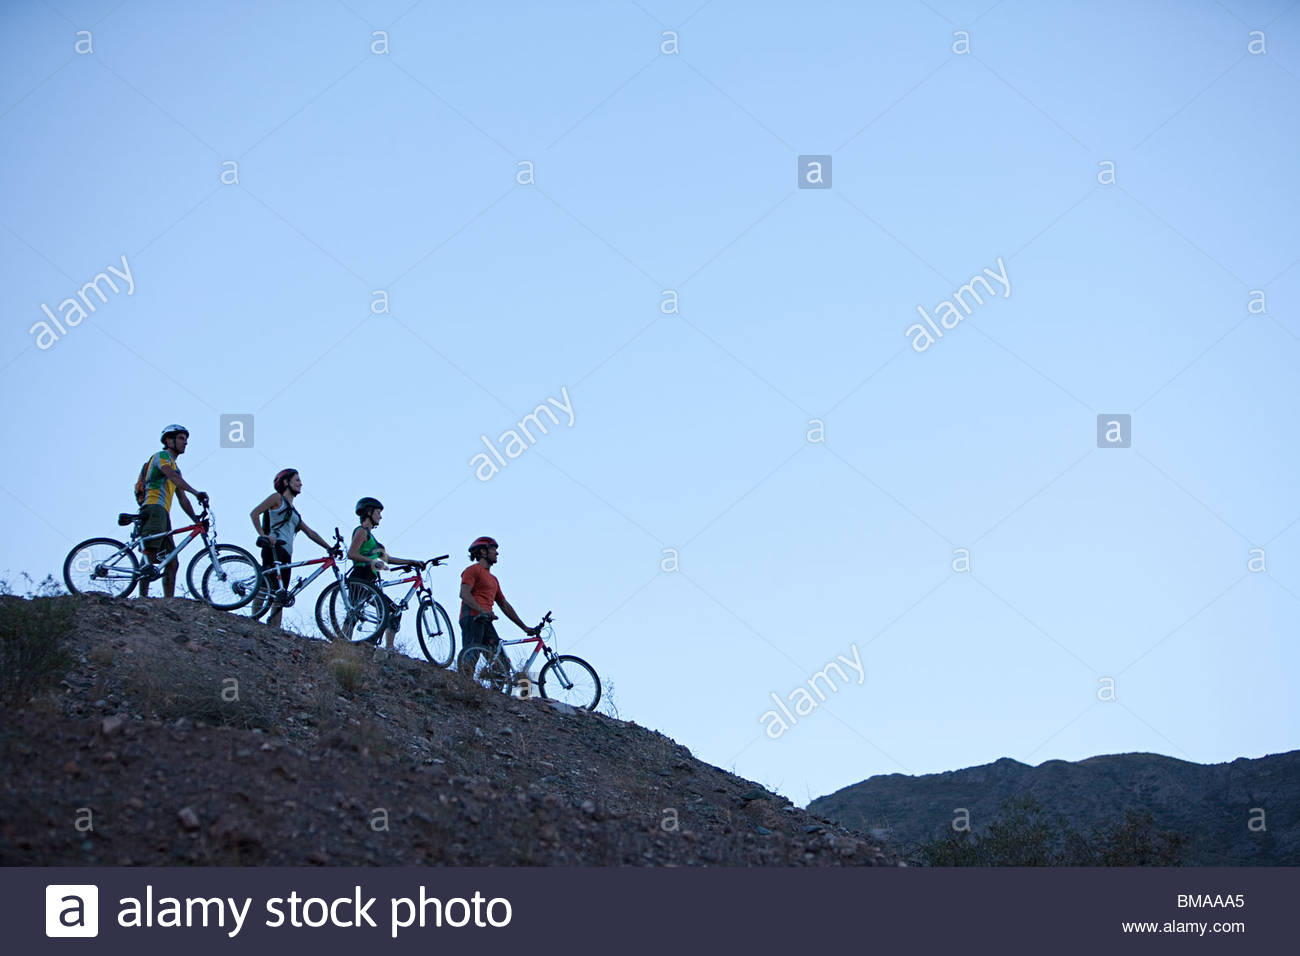 Four mountain bikers on a hill - Stock Image